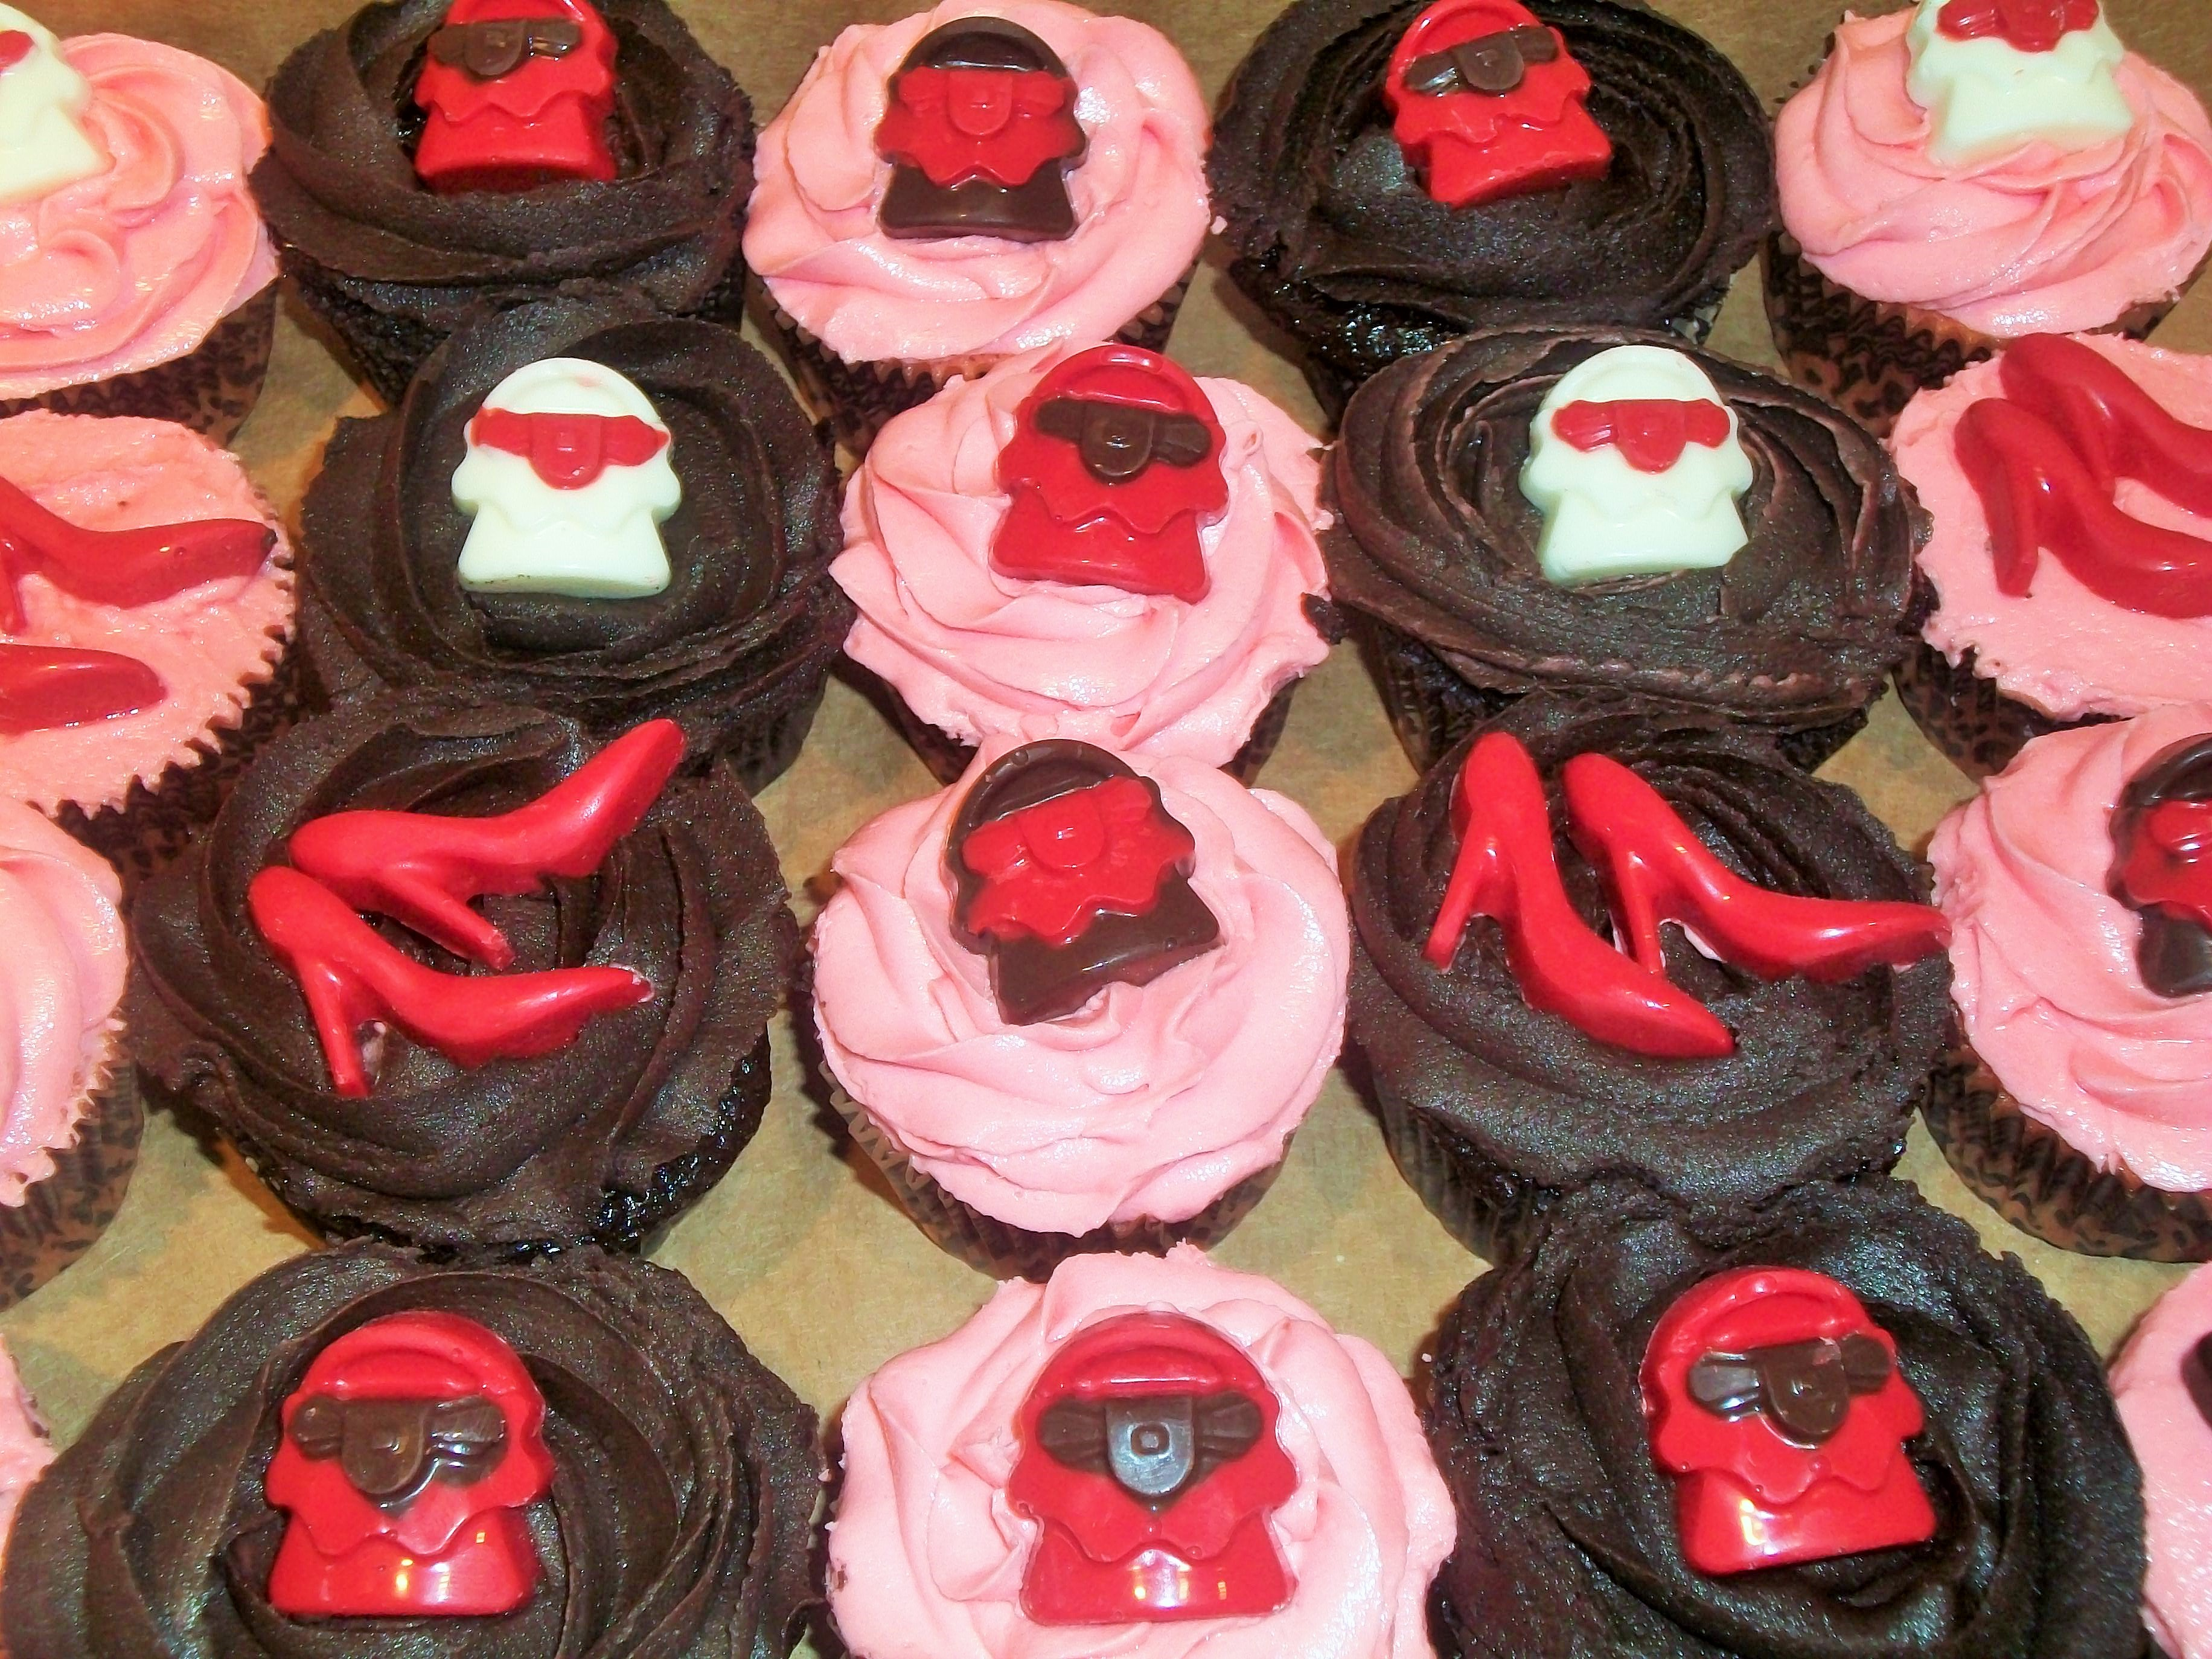 Purse & Shoes Cupcakes